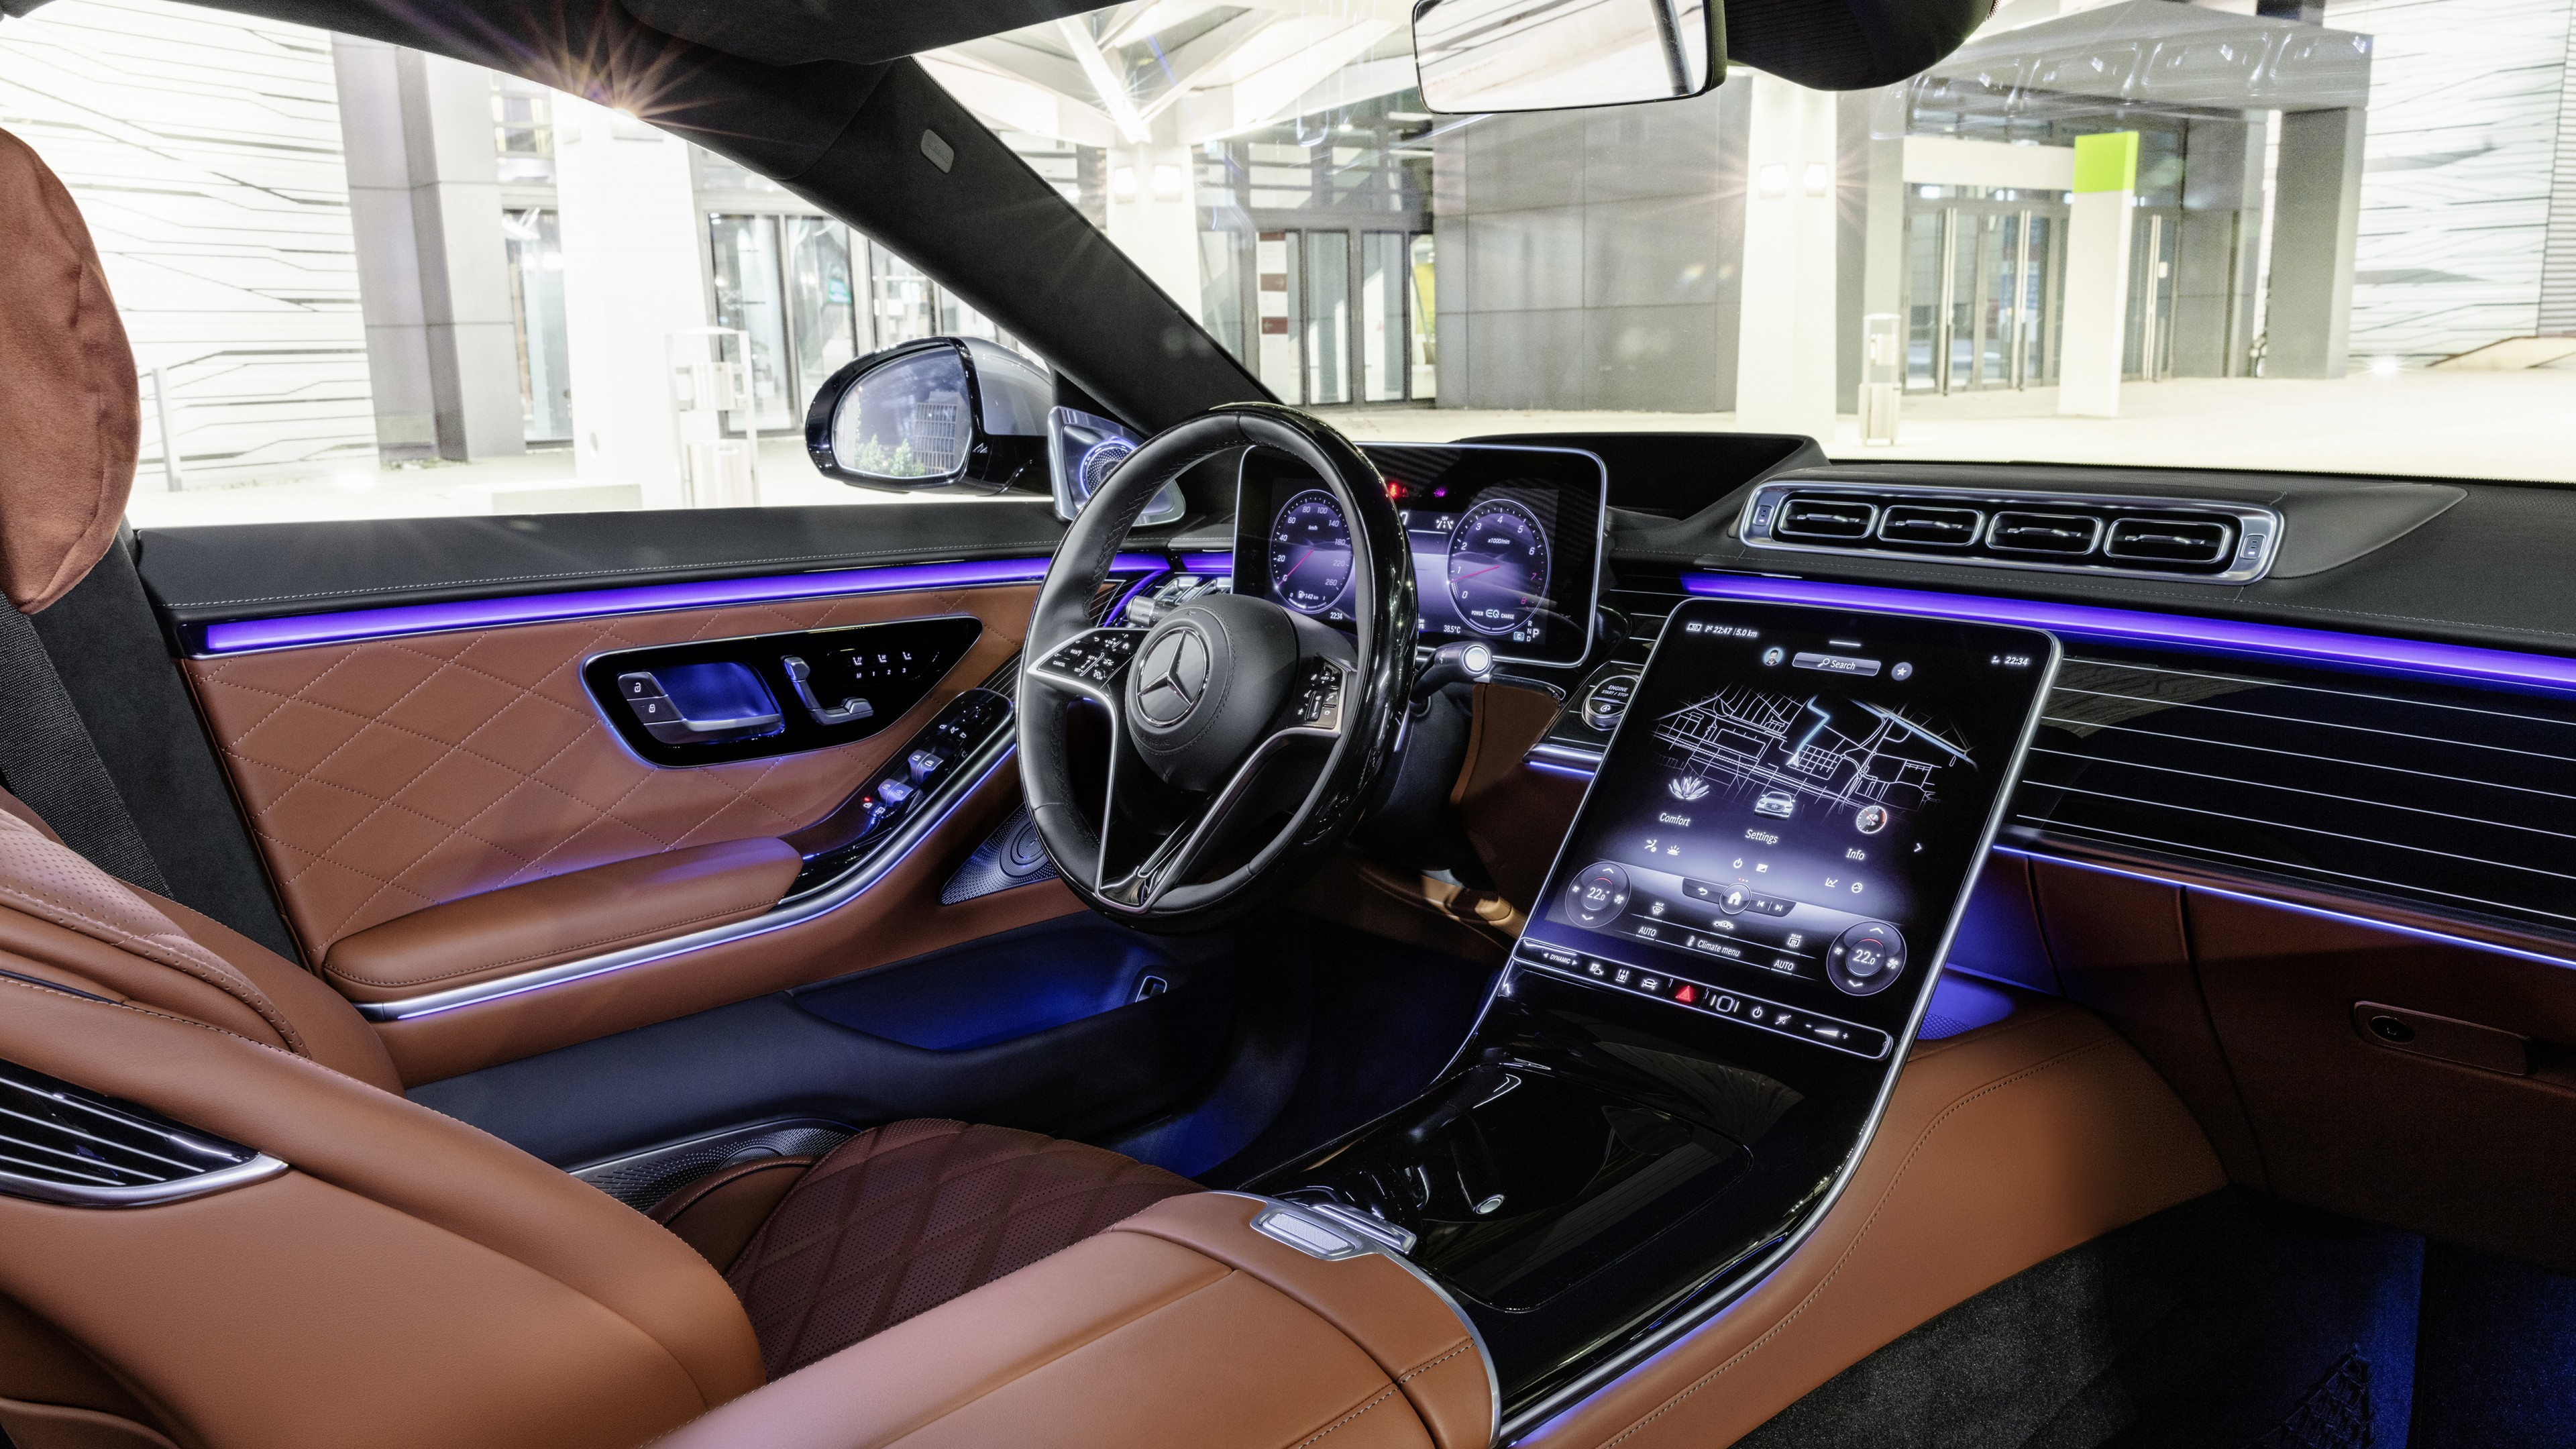 Mercedes Benz S Klasse Lang 2020 5k Interior Wallpaper Hd Car Wallpapers Id 15694